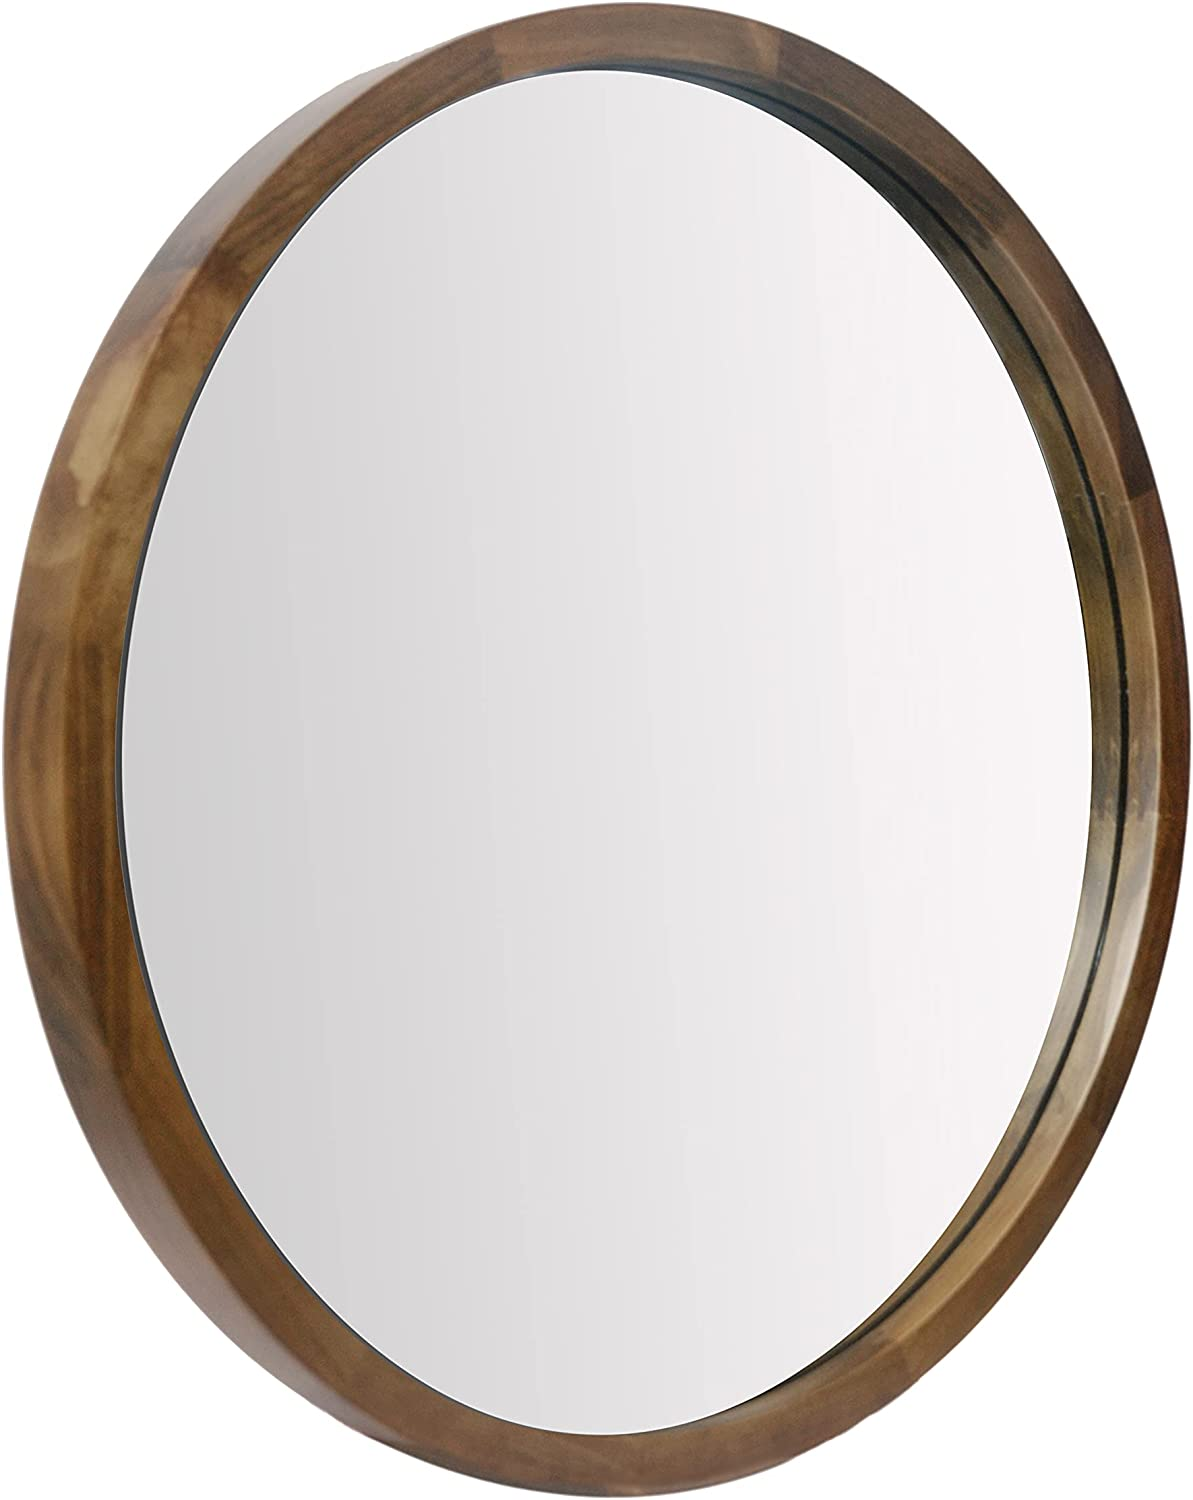 NULIPING 32 Inch Round Wall Mirror for Bathroom Large Circle Vanity Mirror for Wall Decor-Wooden Frame for Entryway Bedroom Living Room Brown